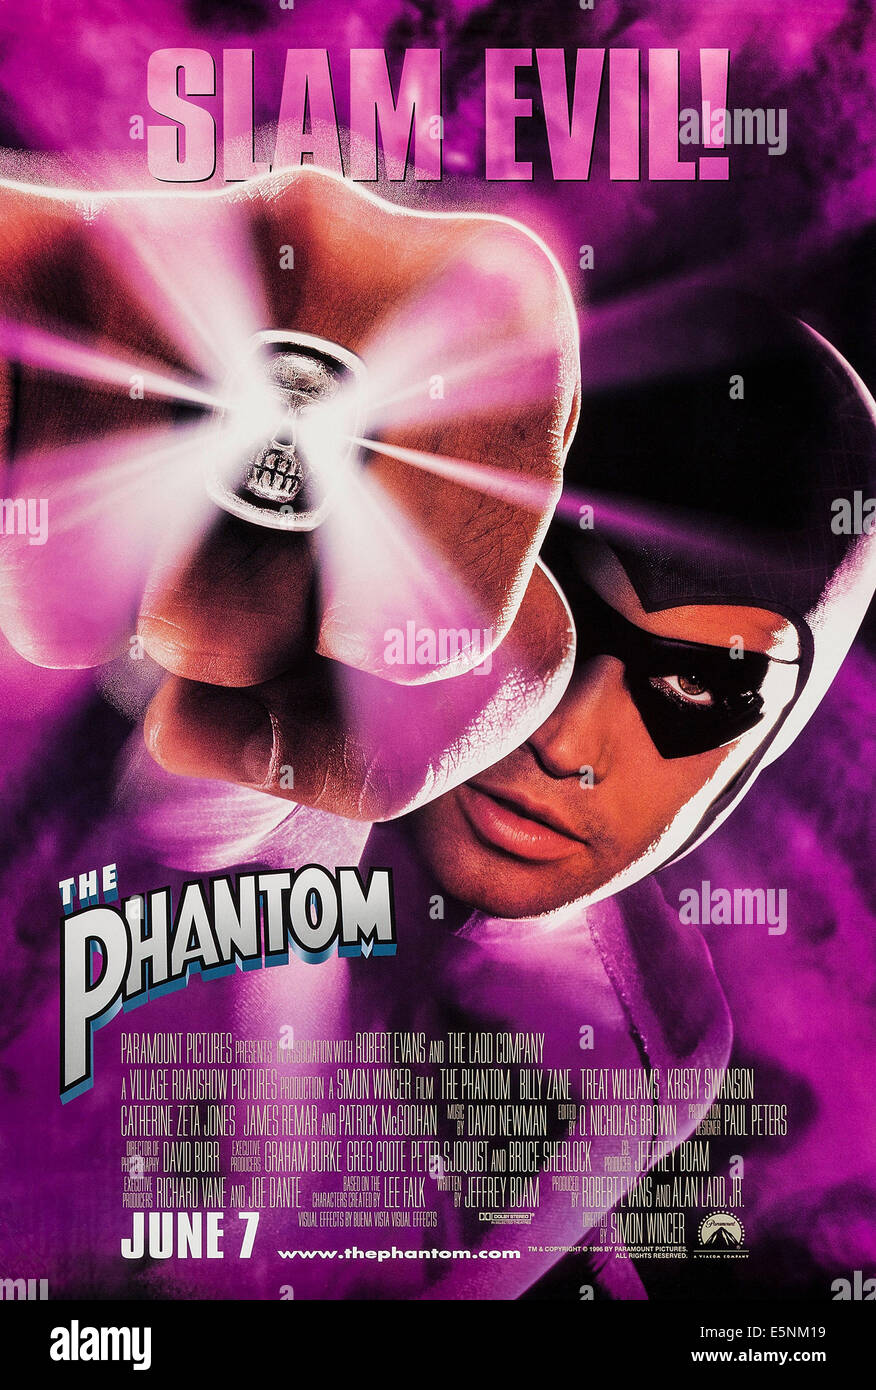 THE PHANTOM, US advance poster art, Billy Zane, 1996, © Paramount/courtesy Evrett Collection - Stock Image